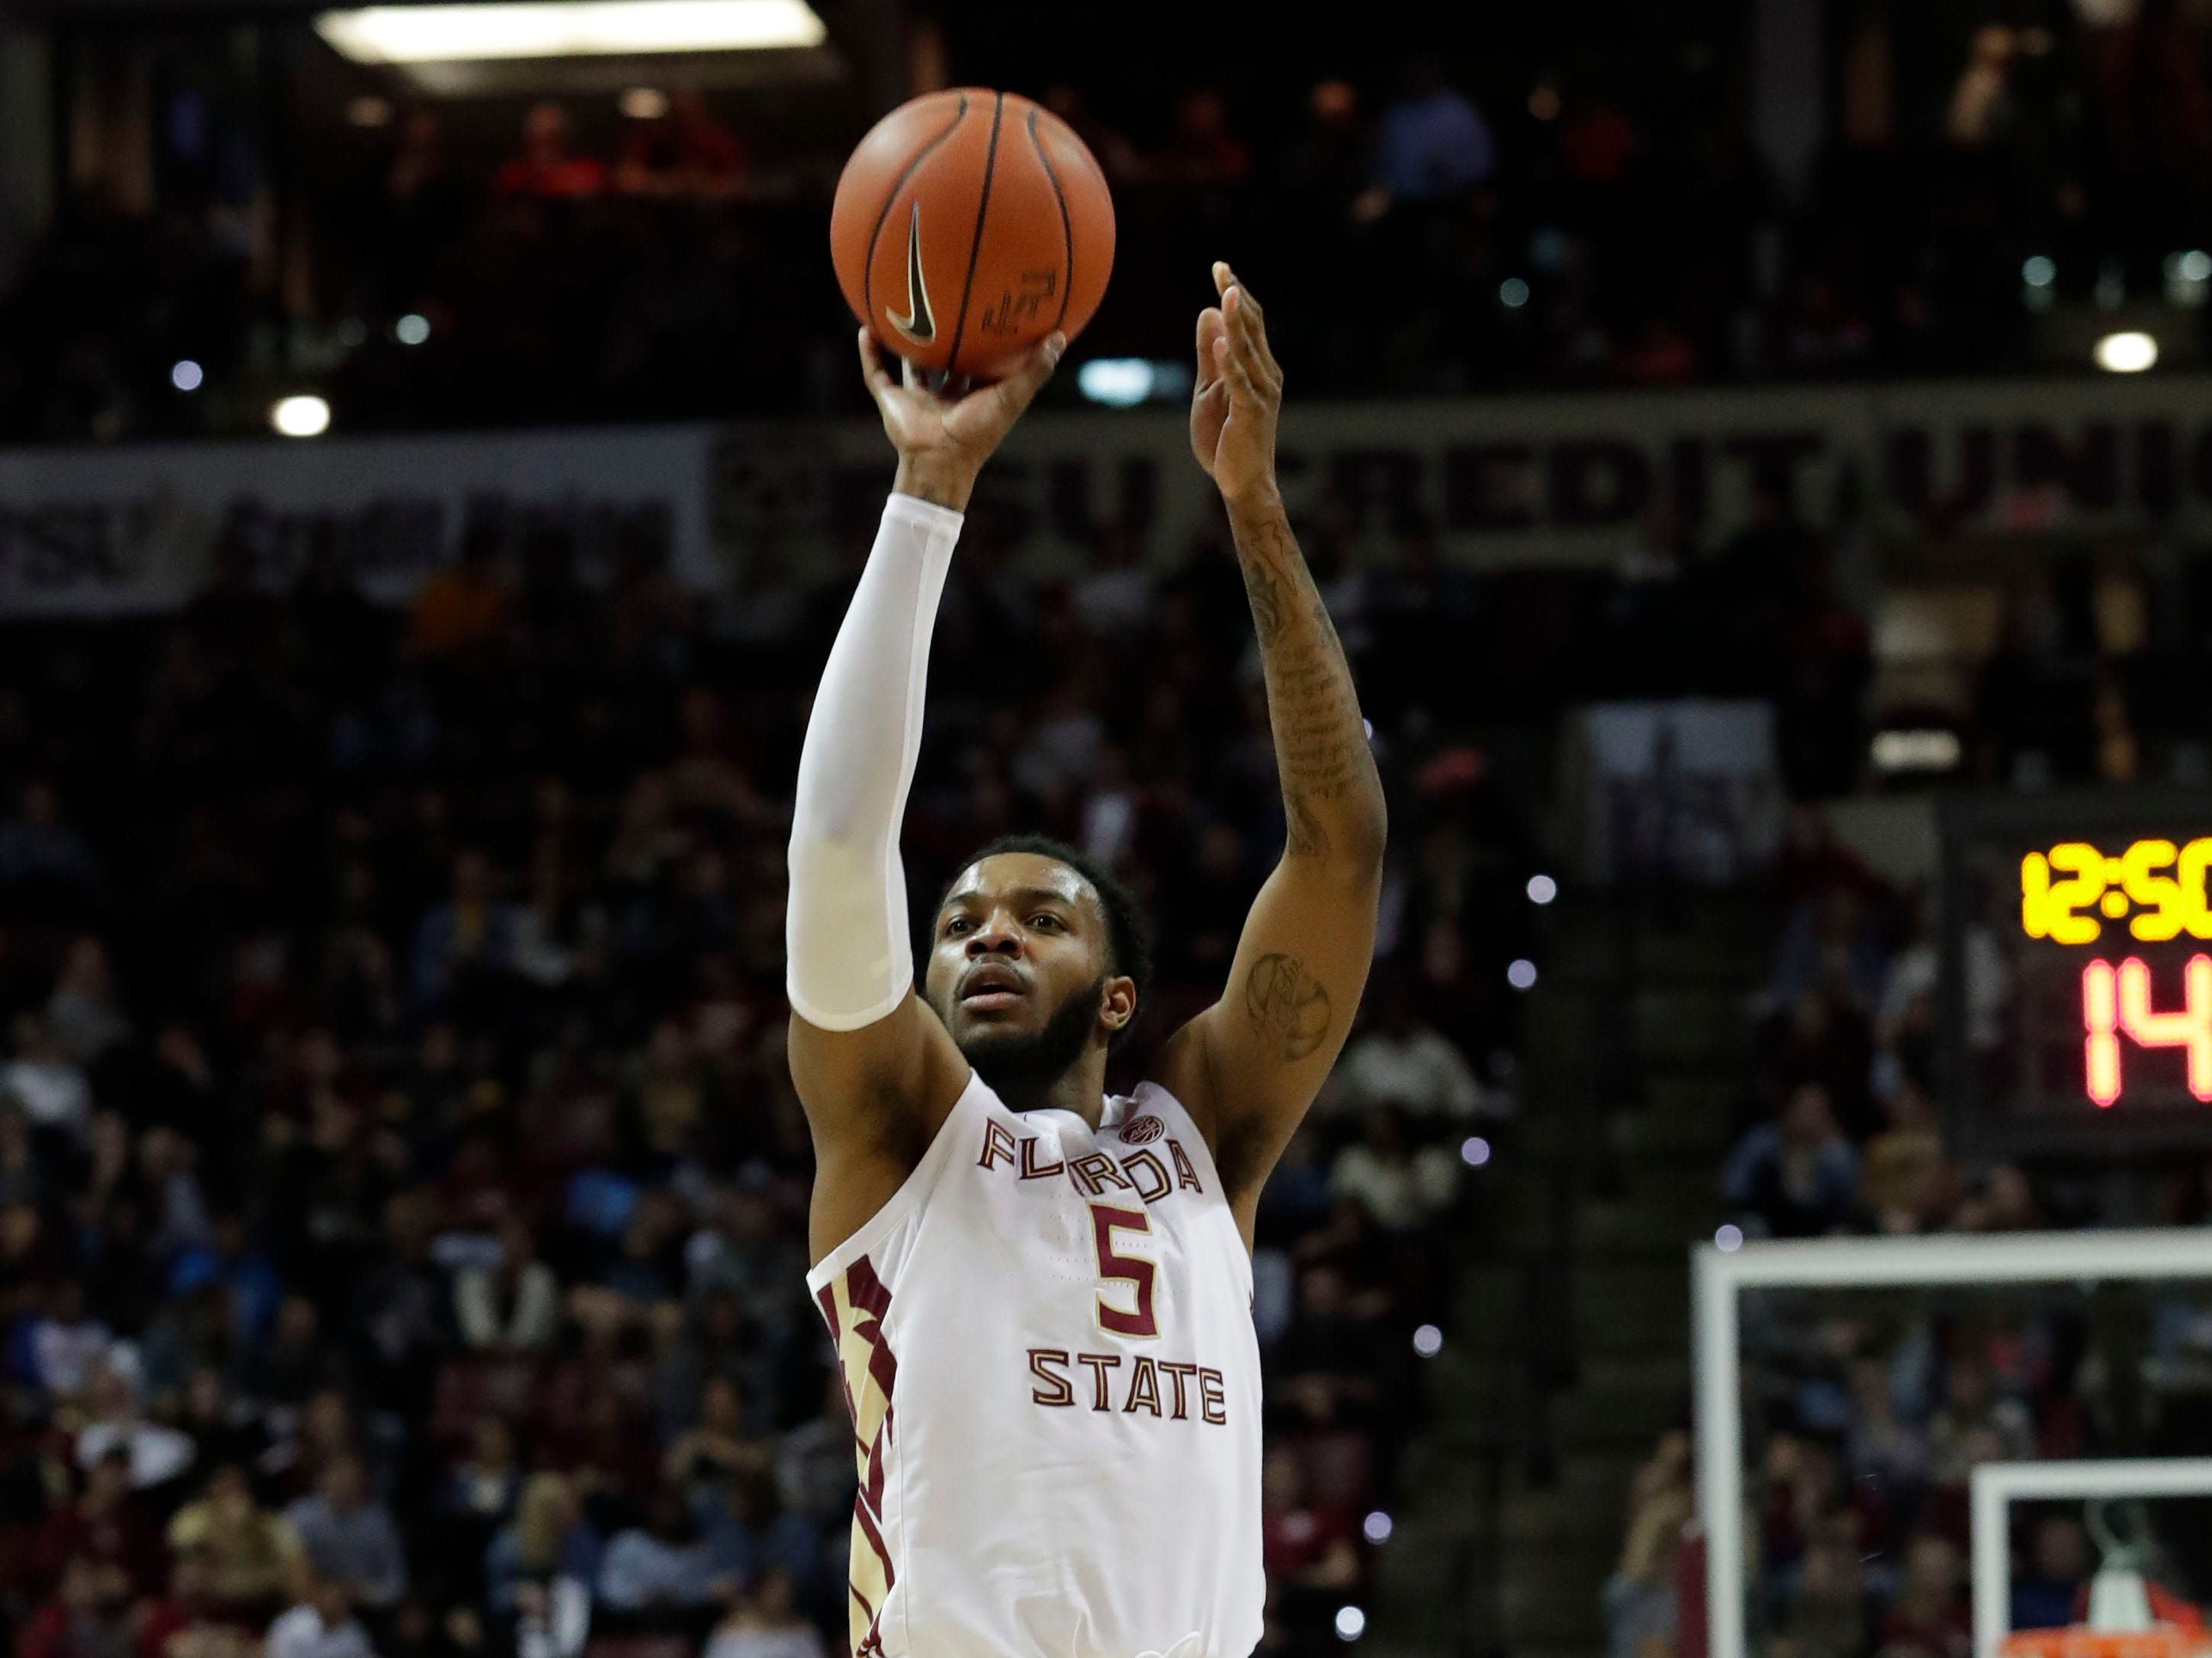 Florida State Seminoles guard PJ Savoy (5) shoots for three. The Florida State Seminoles face off against the Clemson Tigers at the Tucker Civic Center, Tuesday, Jan. 22, 2019.